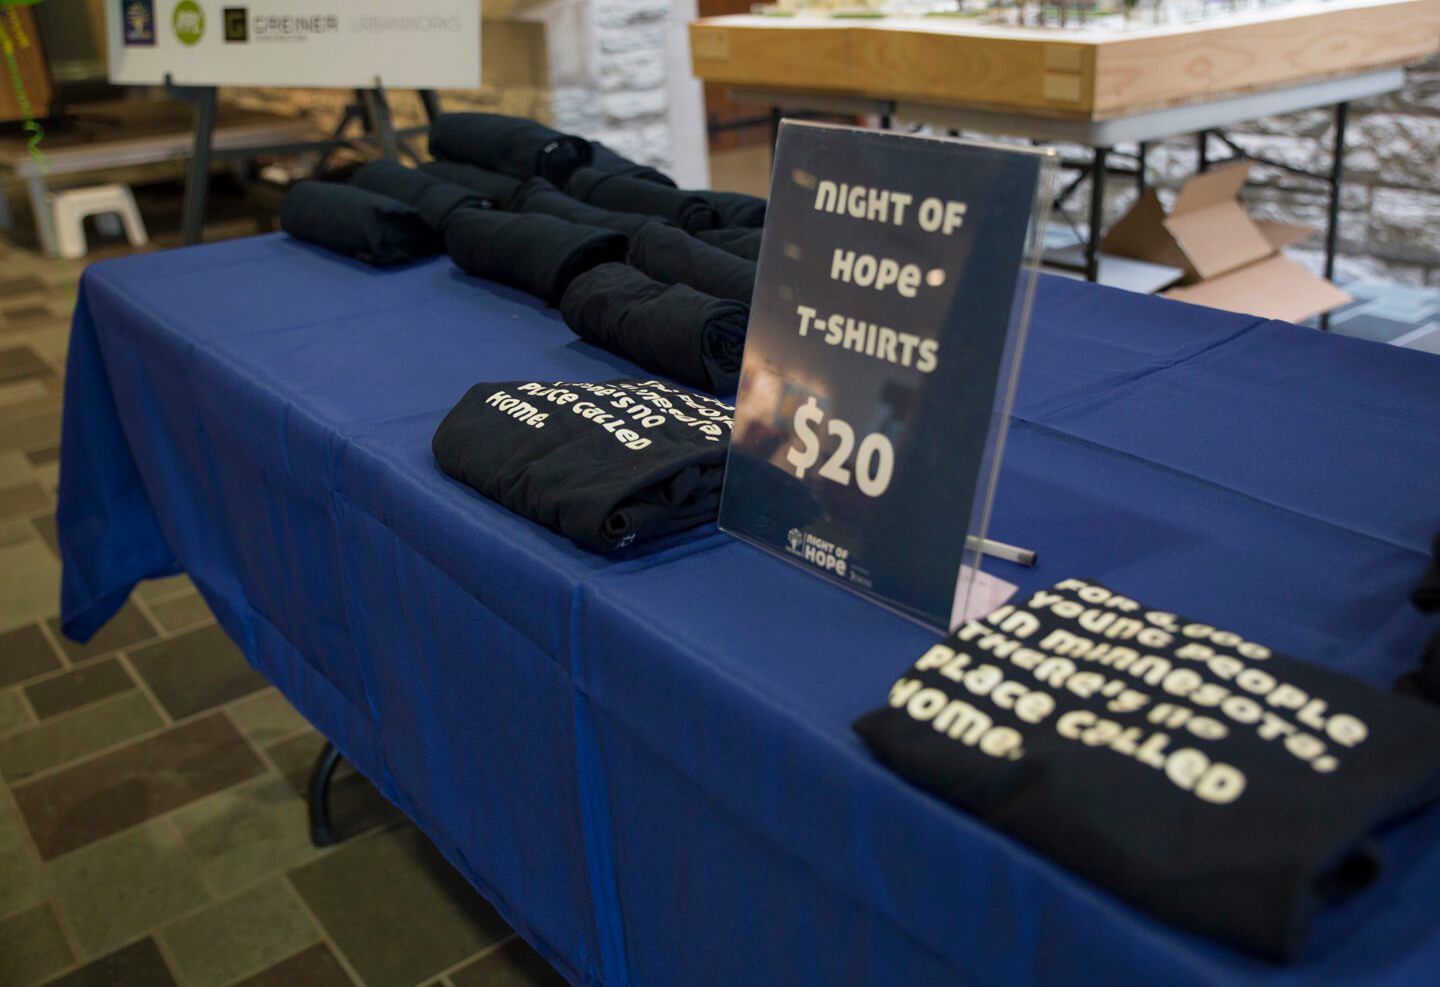 1-night-of-hope-t-shirts